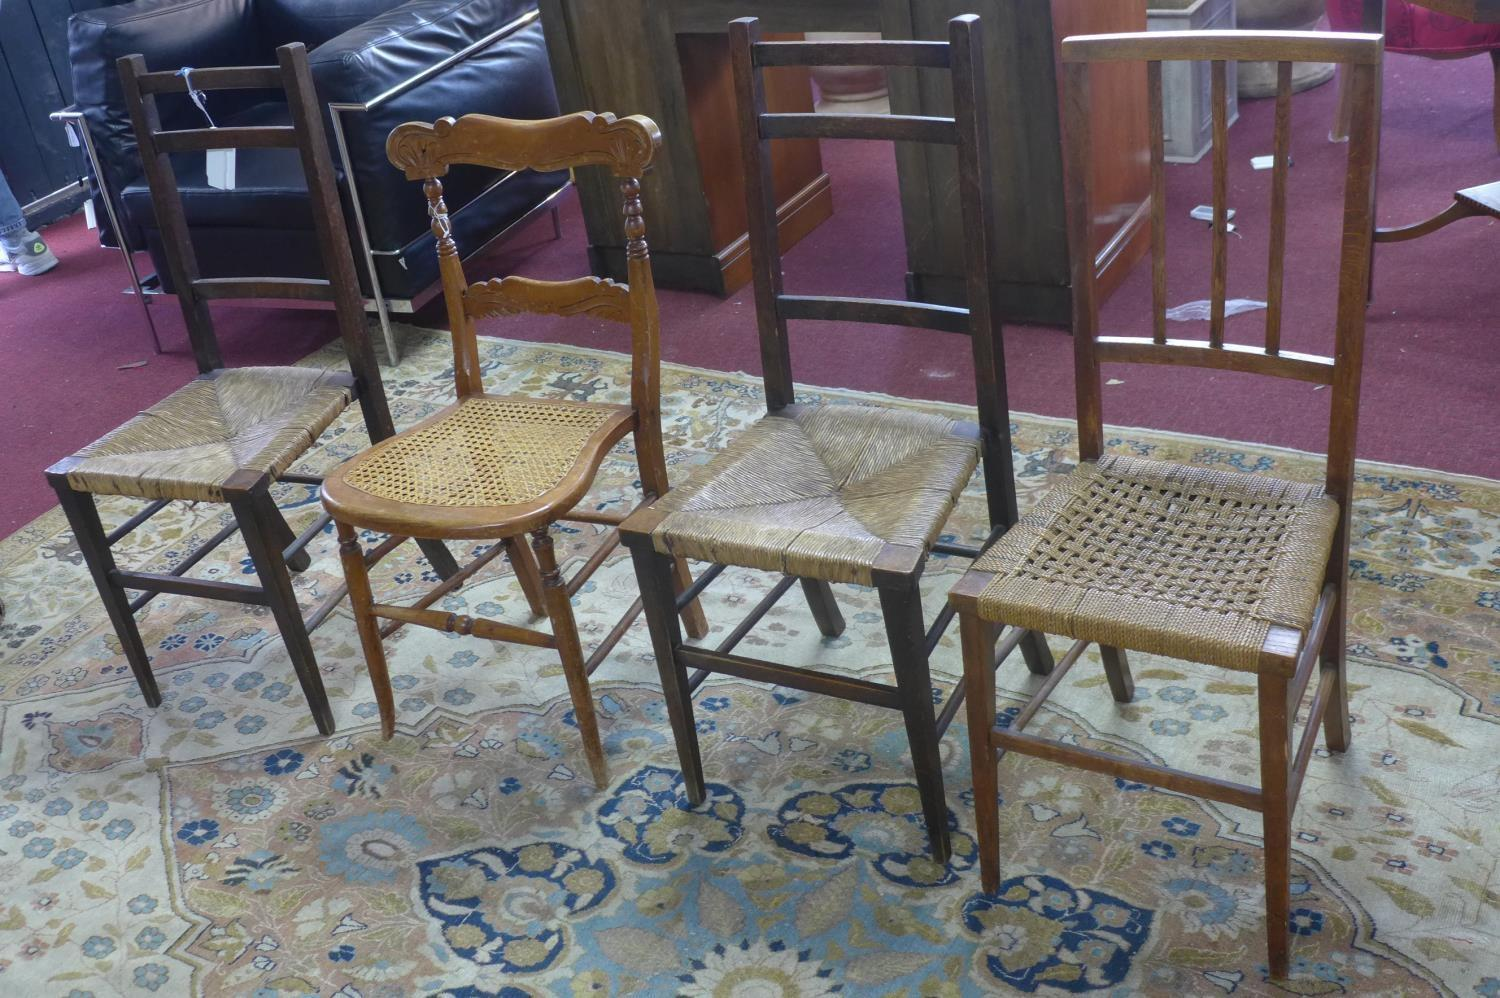 Lot 158 - Three early 20th century oak kitchen chairs, with rush seats, together with a bedroom chair with